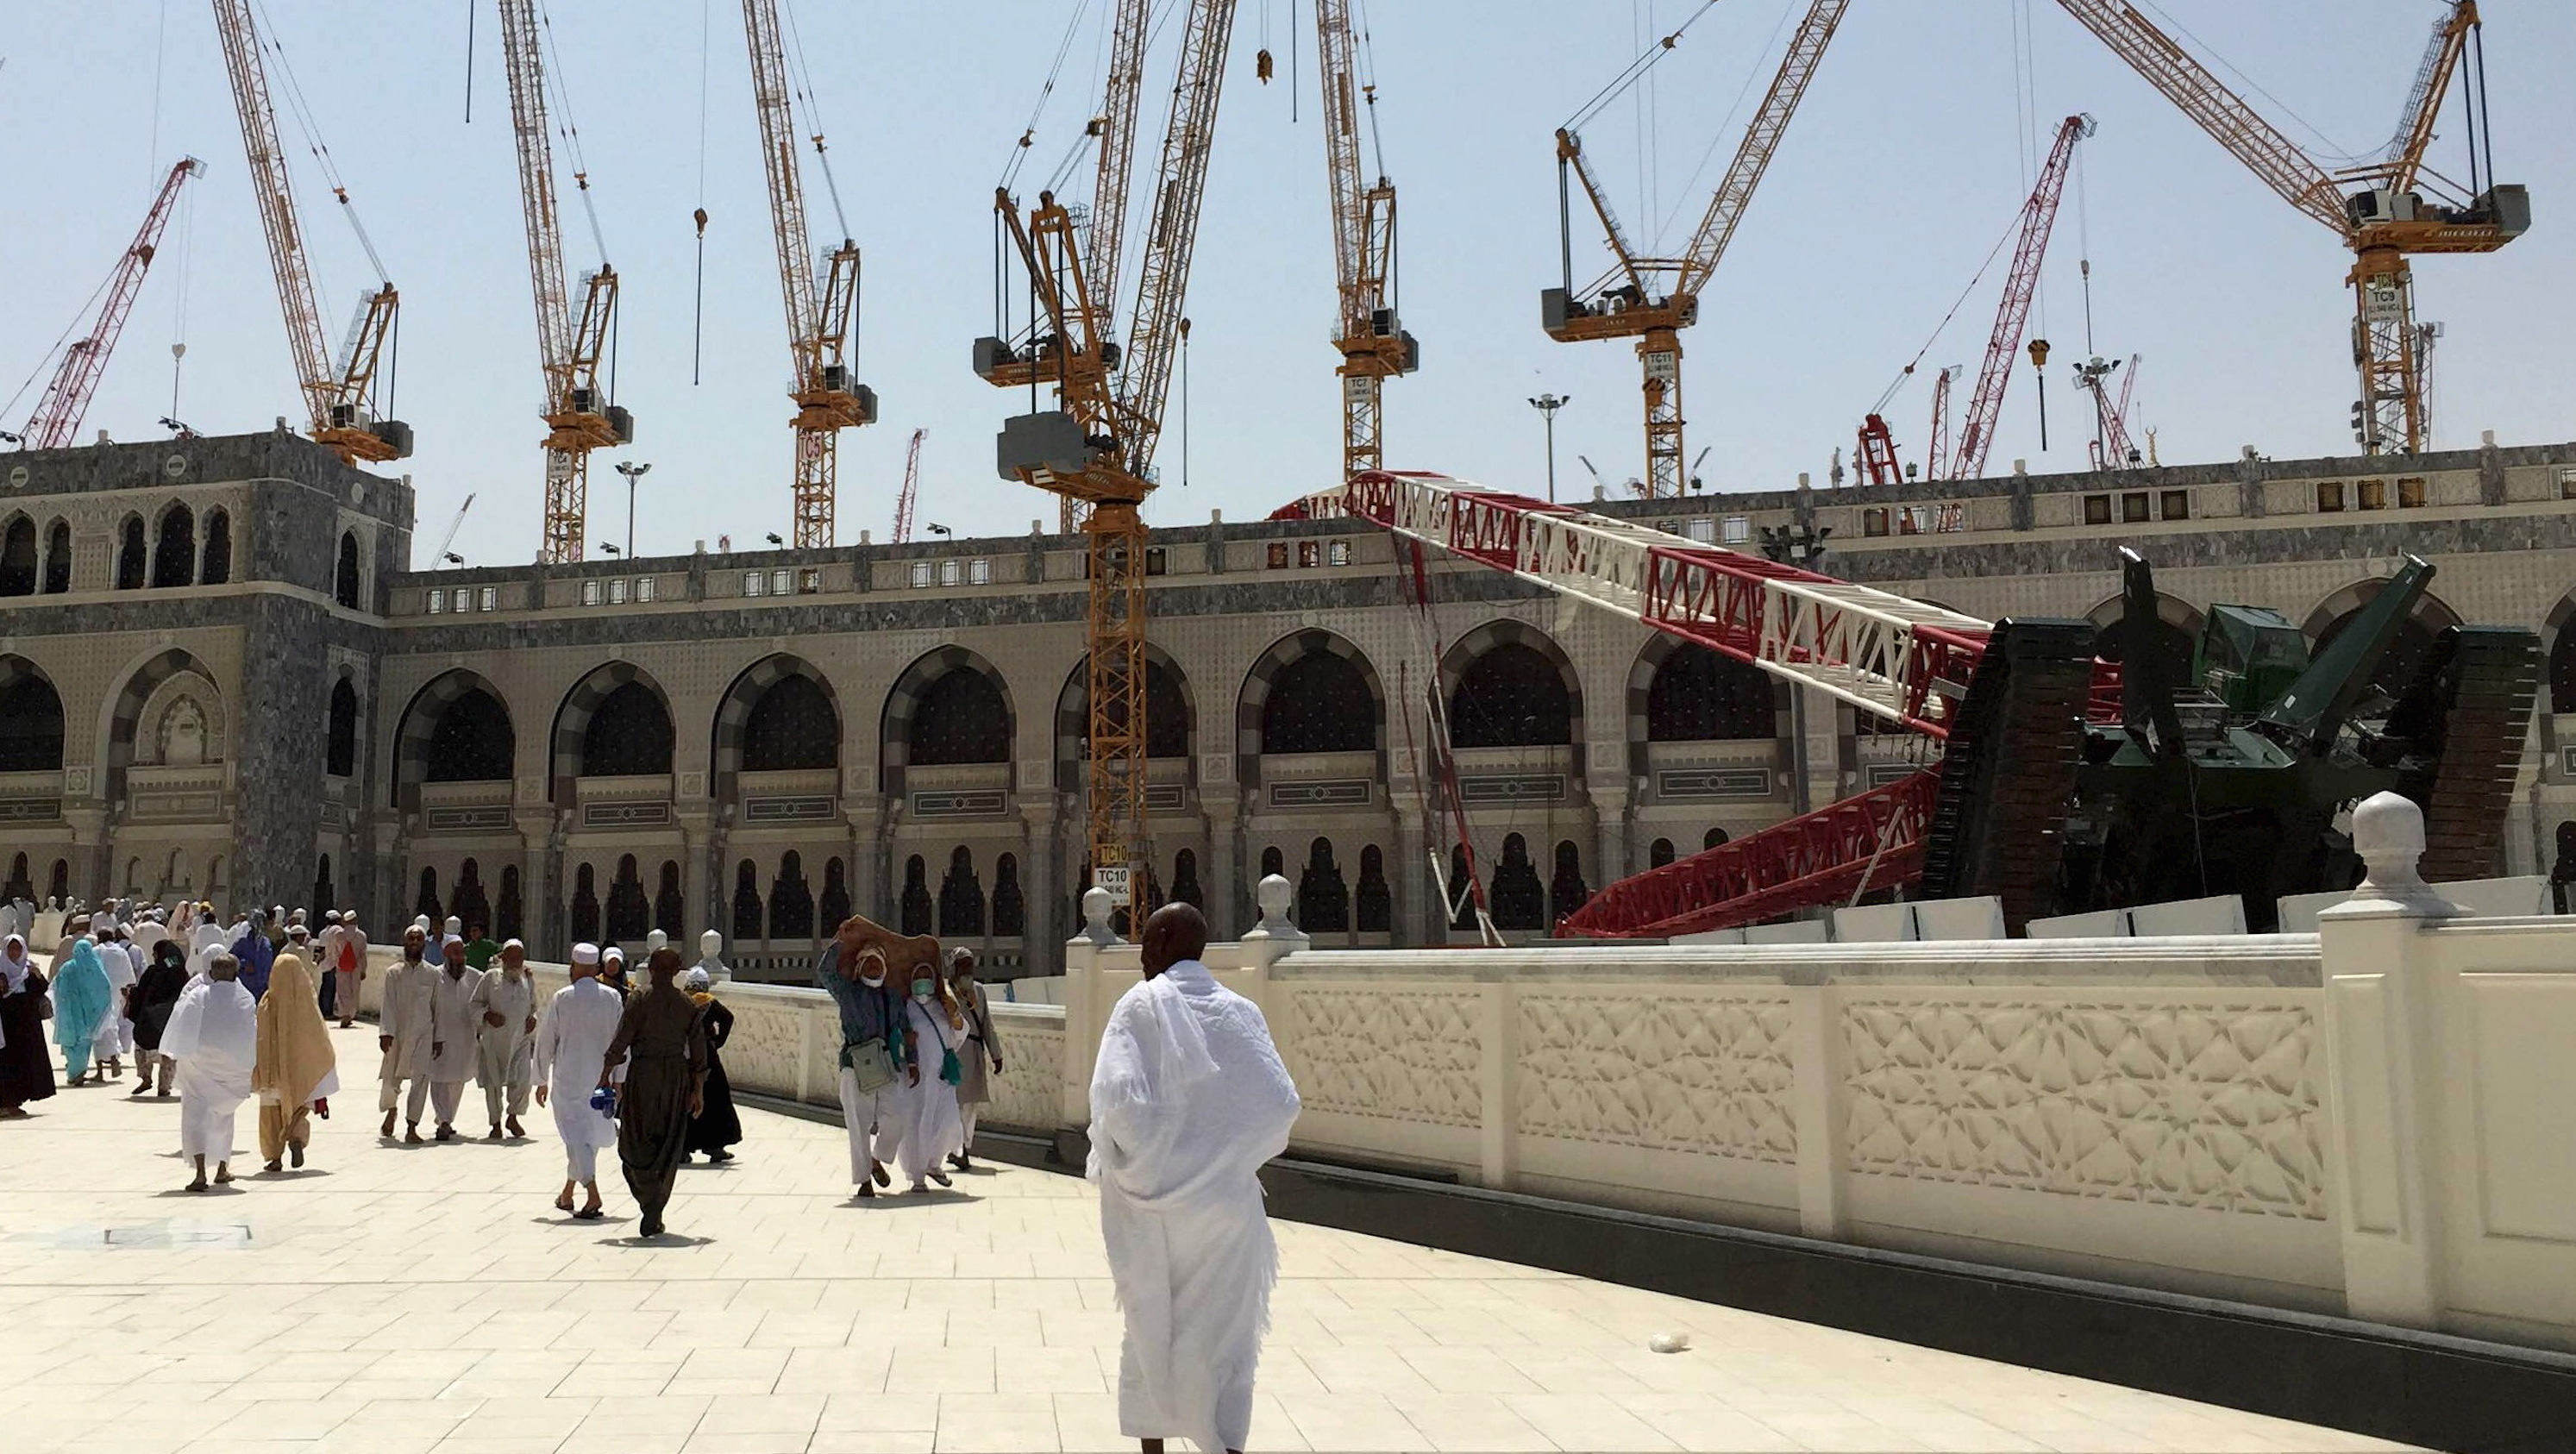 Muslim pilgrims walk near a construction crane which crashed in the Grand Mosque in the Muslim holy city of Mecca, Saudi Arabia